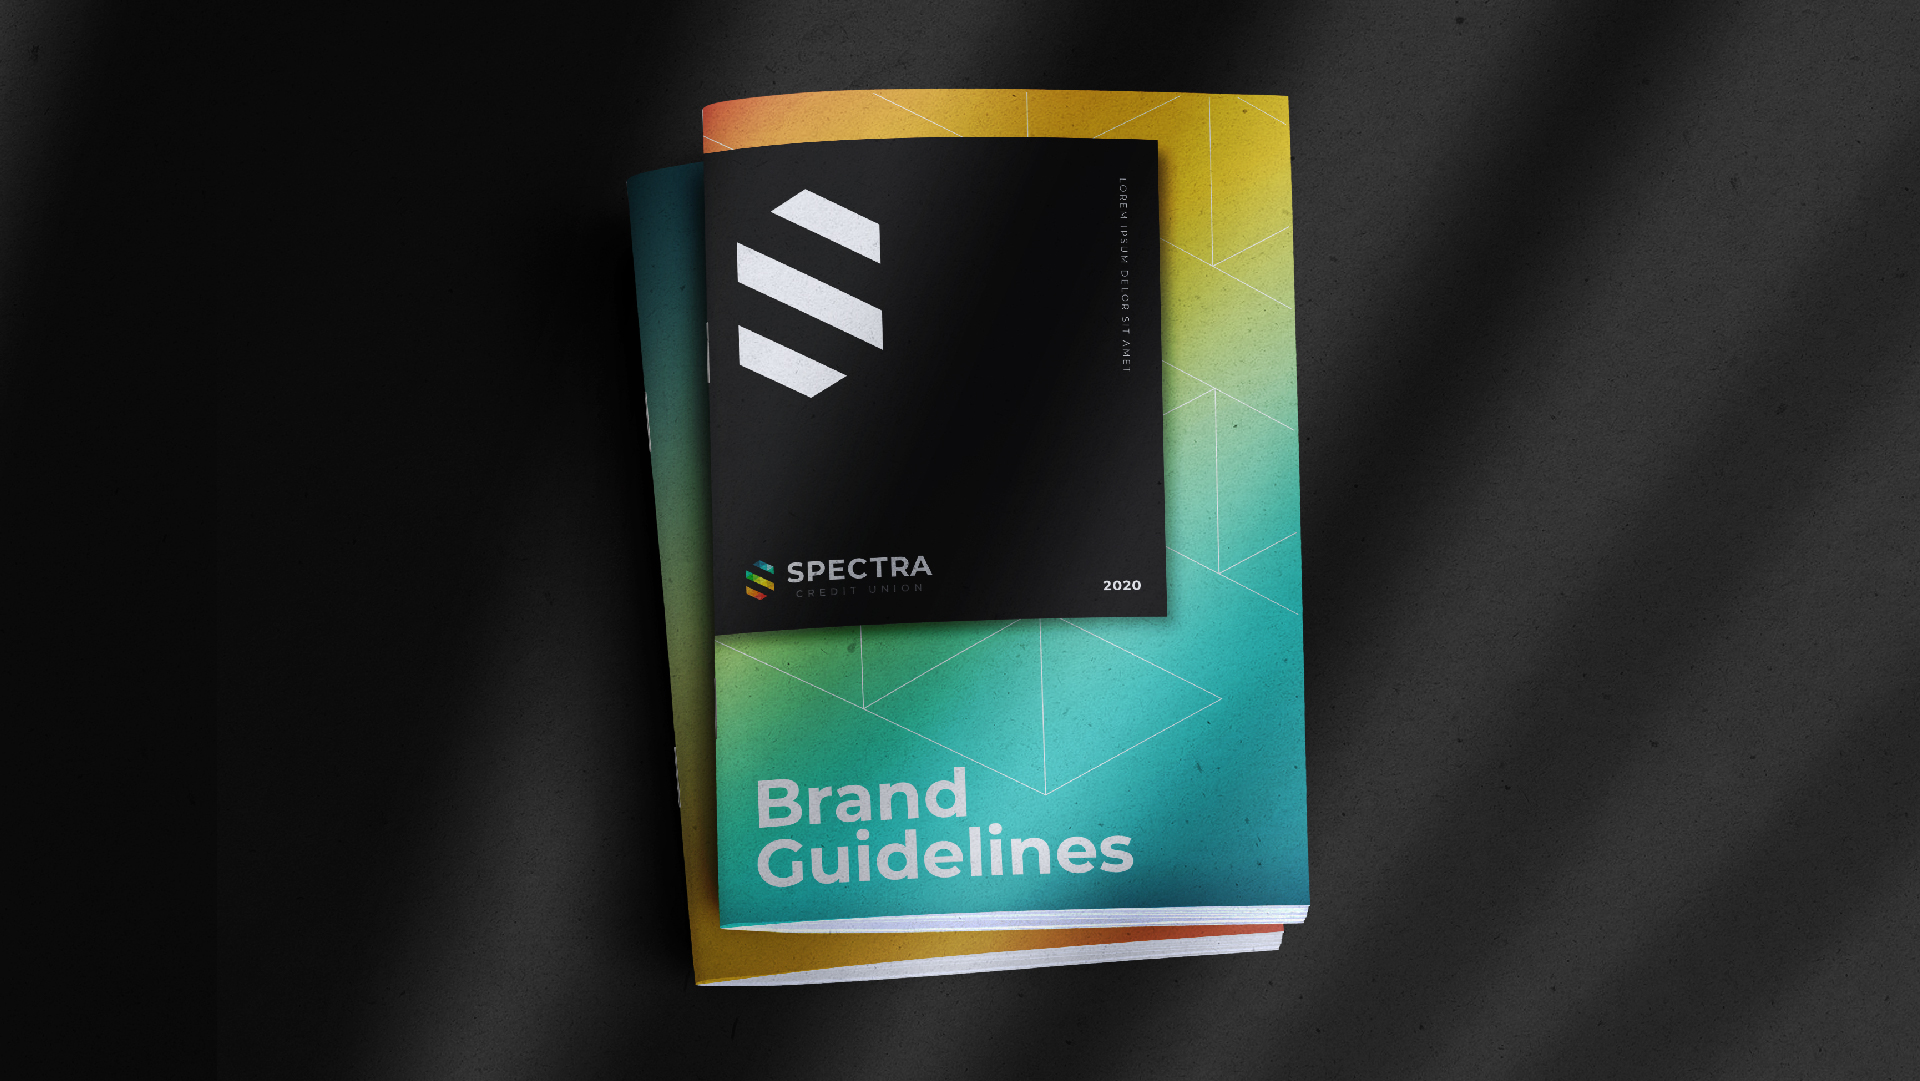 Spectra Credit Cards